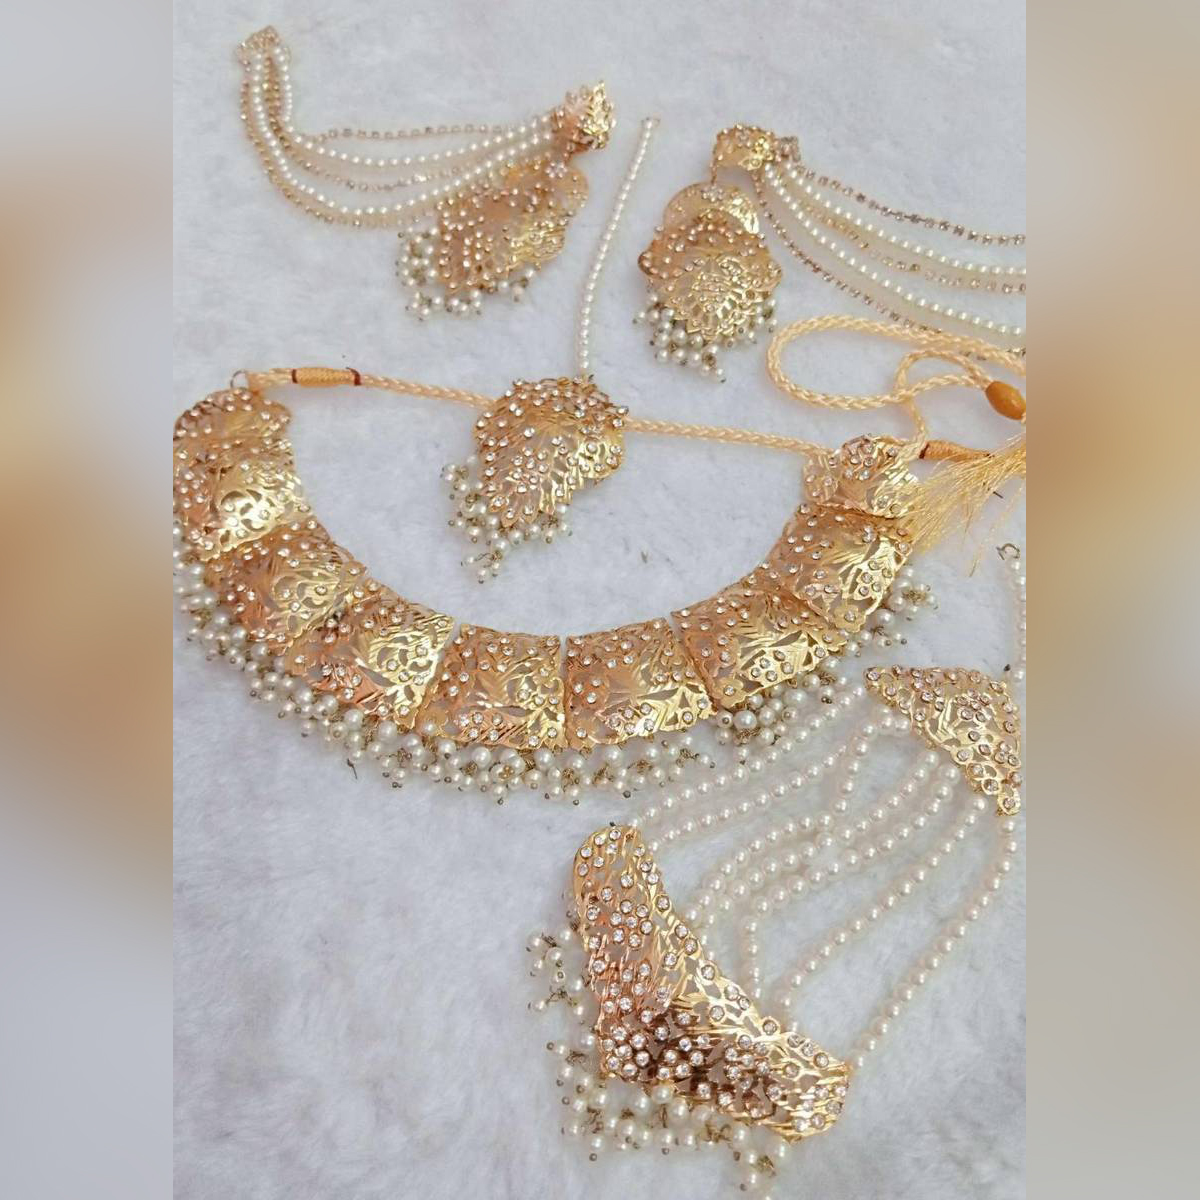 - Set bridal Hyderabadi style gold plated - new look - gold plated  - Long lasting Polish - Famous jewellery - Fashionable design